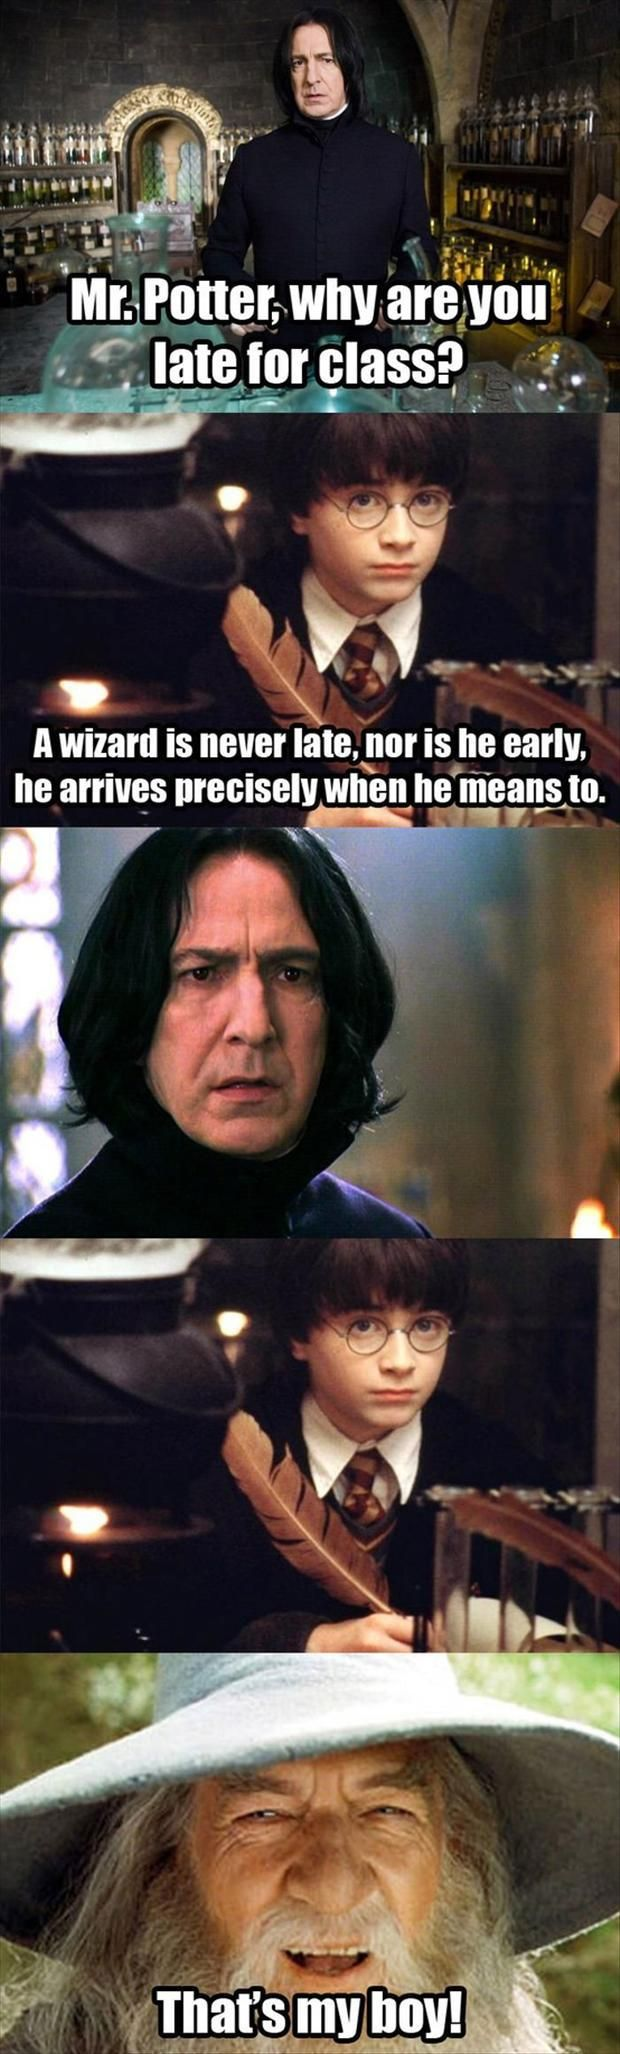 Funny Harry Potter Quotes Interesting A Wizard Is Never Late Nor Is He Early Funny Harry Potter Quotes